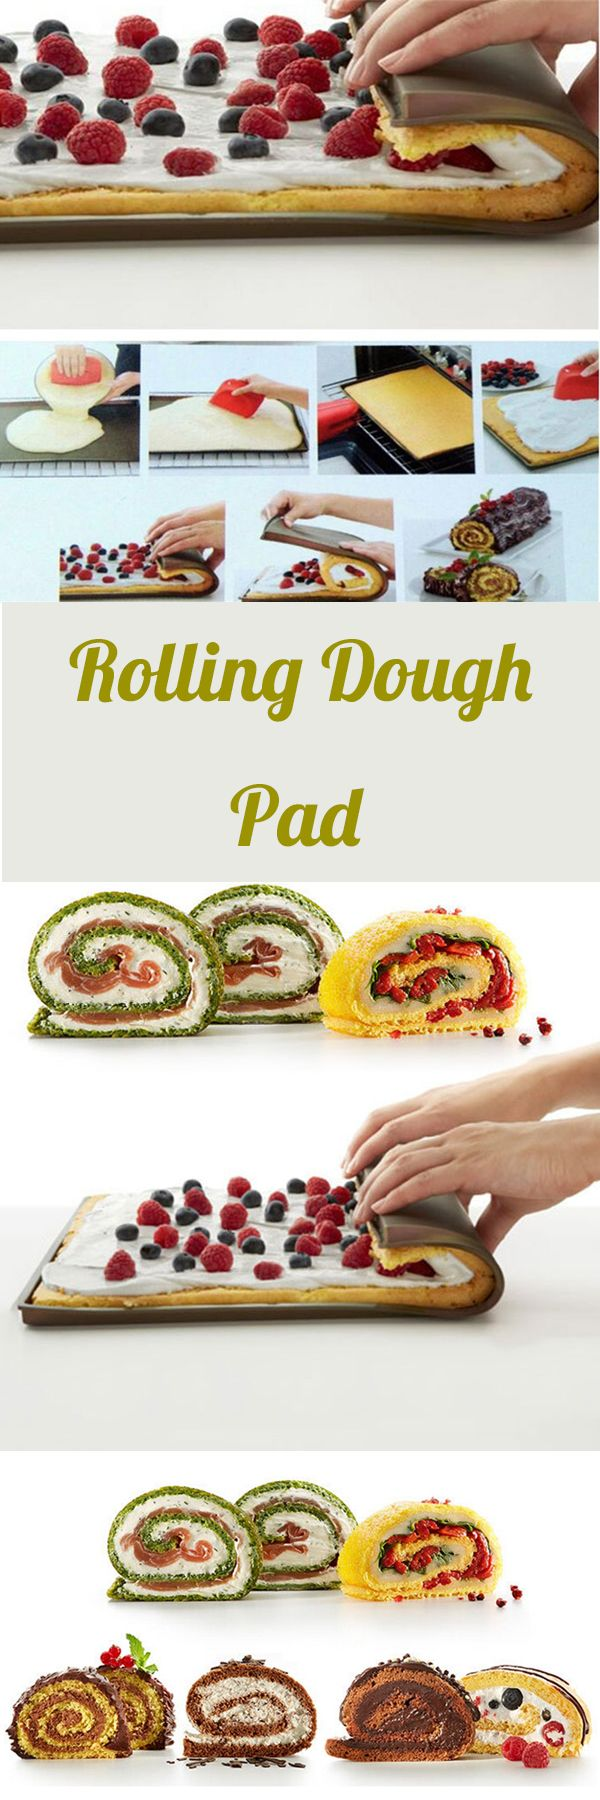 US$6.59 Non-stick Silicone Oven Baking Mat Swiss Roll Baking Sheet Rolling Dough Pad#newchic#home#kitchen#food